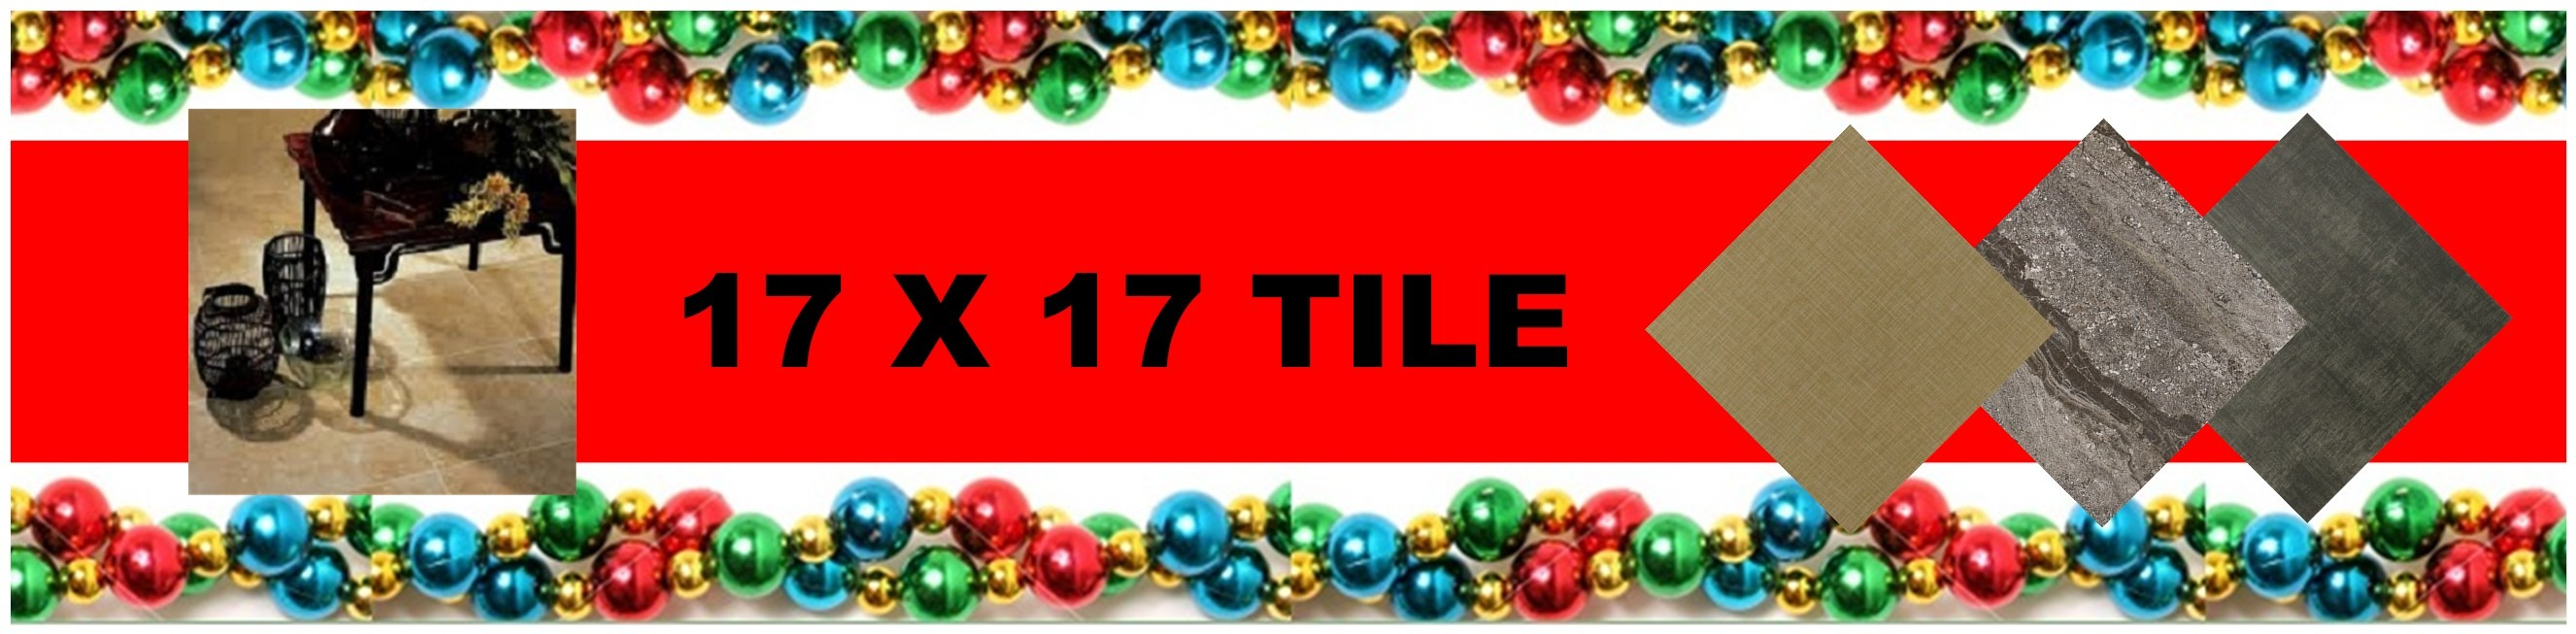 CHRISTMAS 17 X 17 TILE HEADER